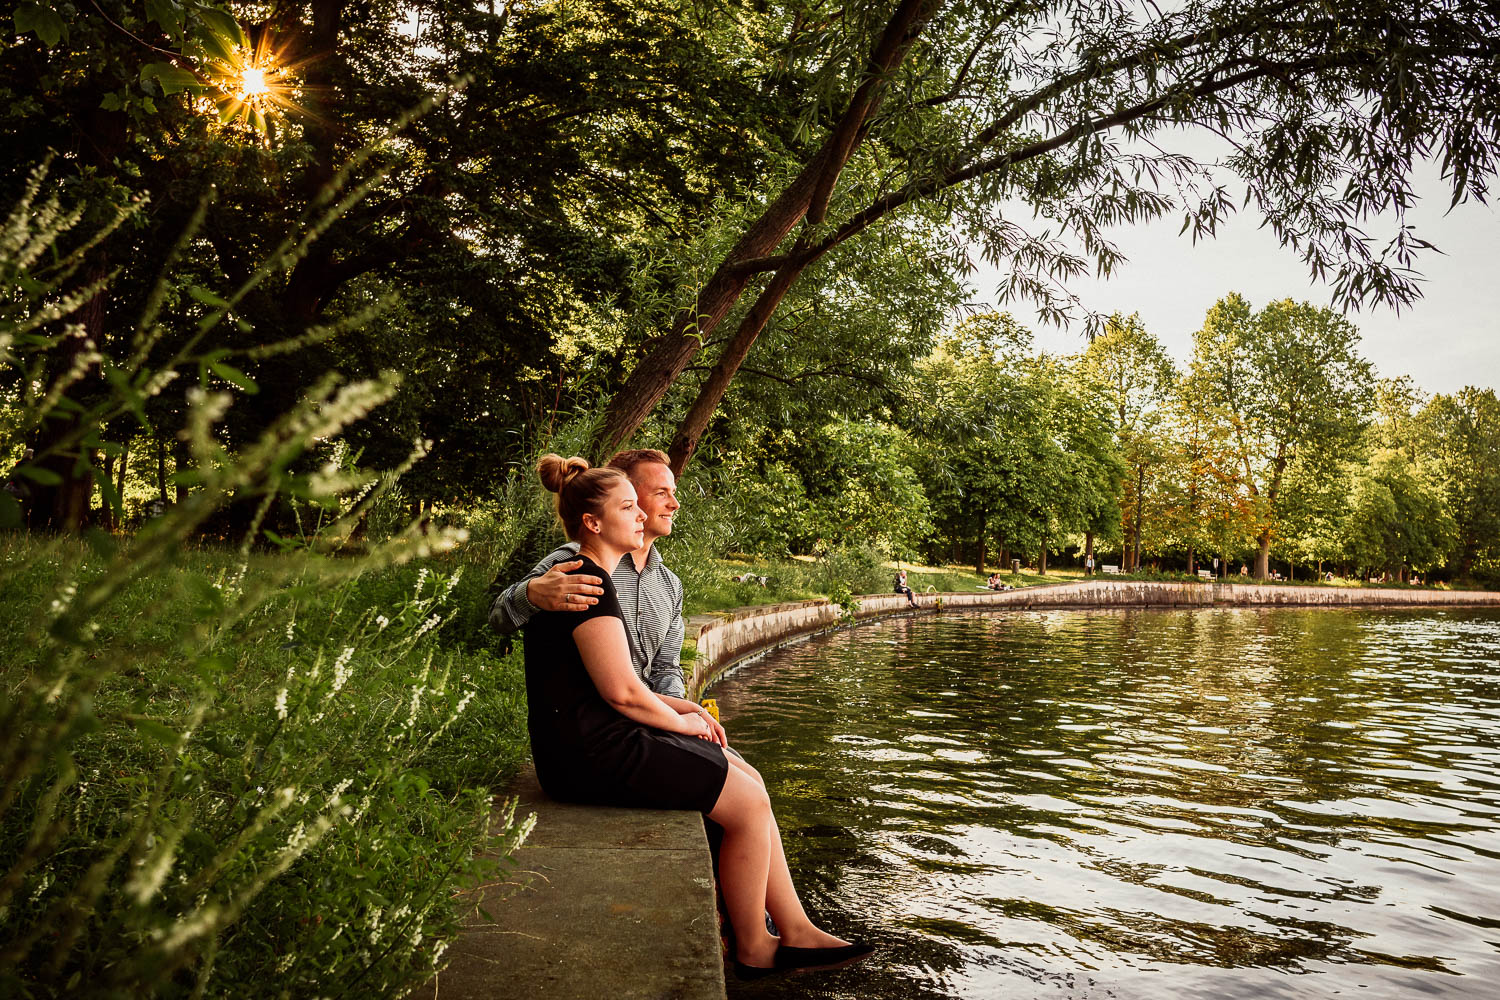 Engagement-Shooting an der Spree